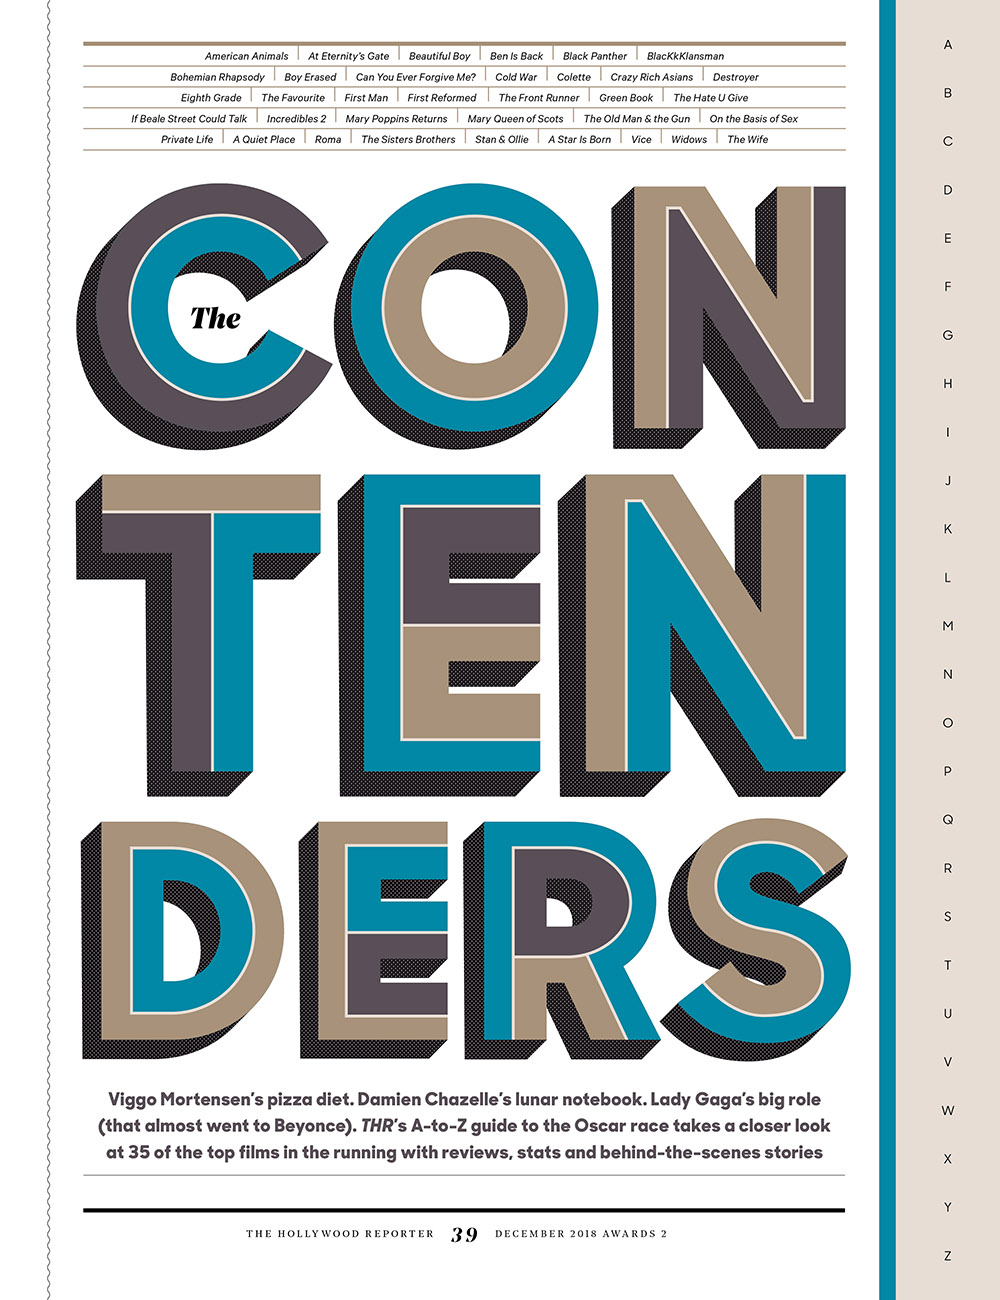 The Contenders (2019) / The Hollywood Reporter / December 2018 / kelsey stefanson / art direction + graphic design / yeskelsey.com